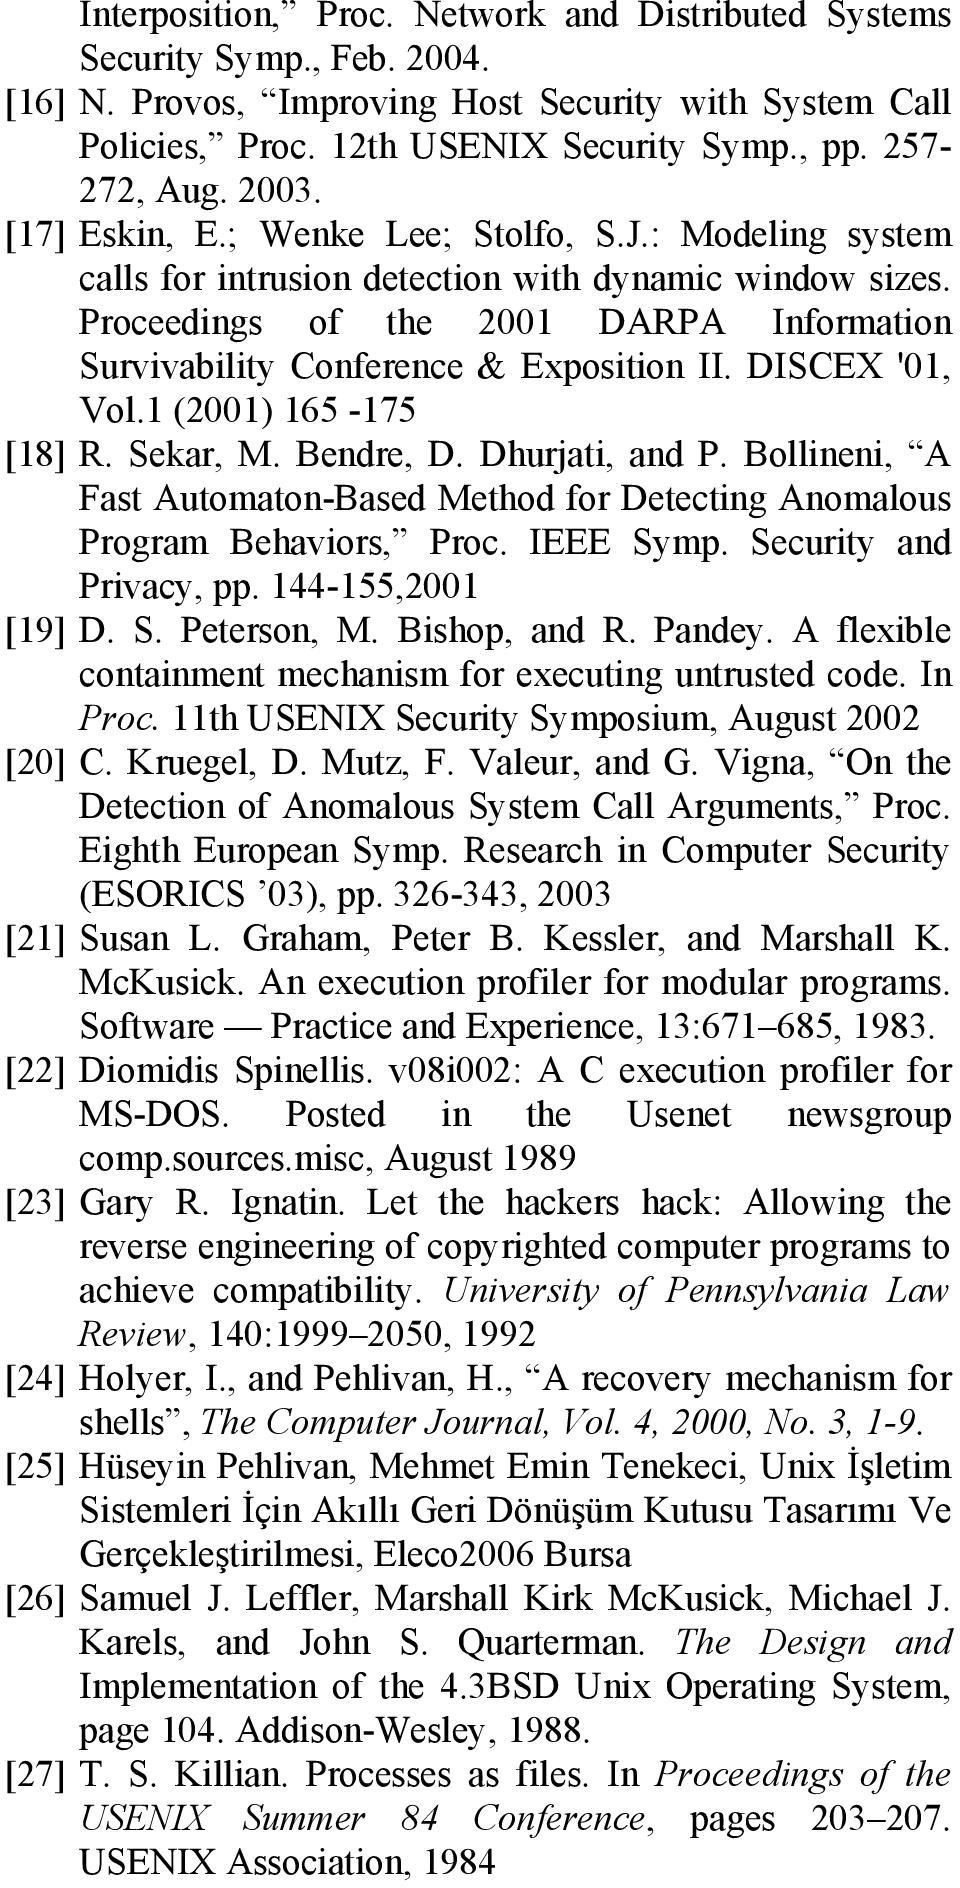 Proceedings of the 2001 DARPA Information Survivability Conference & Exposition II. DISCEX '01, Vol.1 (2001) 165-175 [18] R. Sekar, M. Bendre, D. Dhurjati, and P.